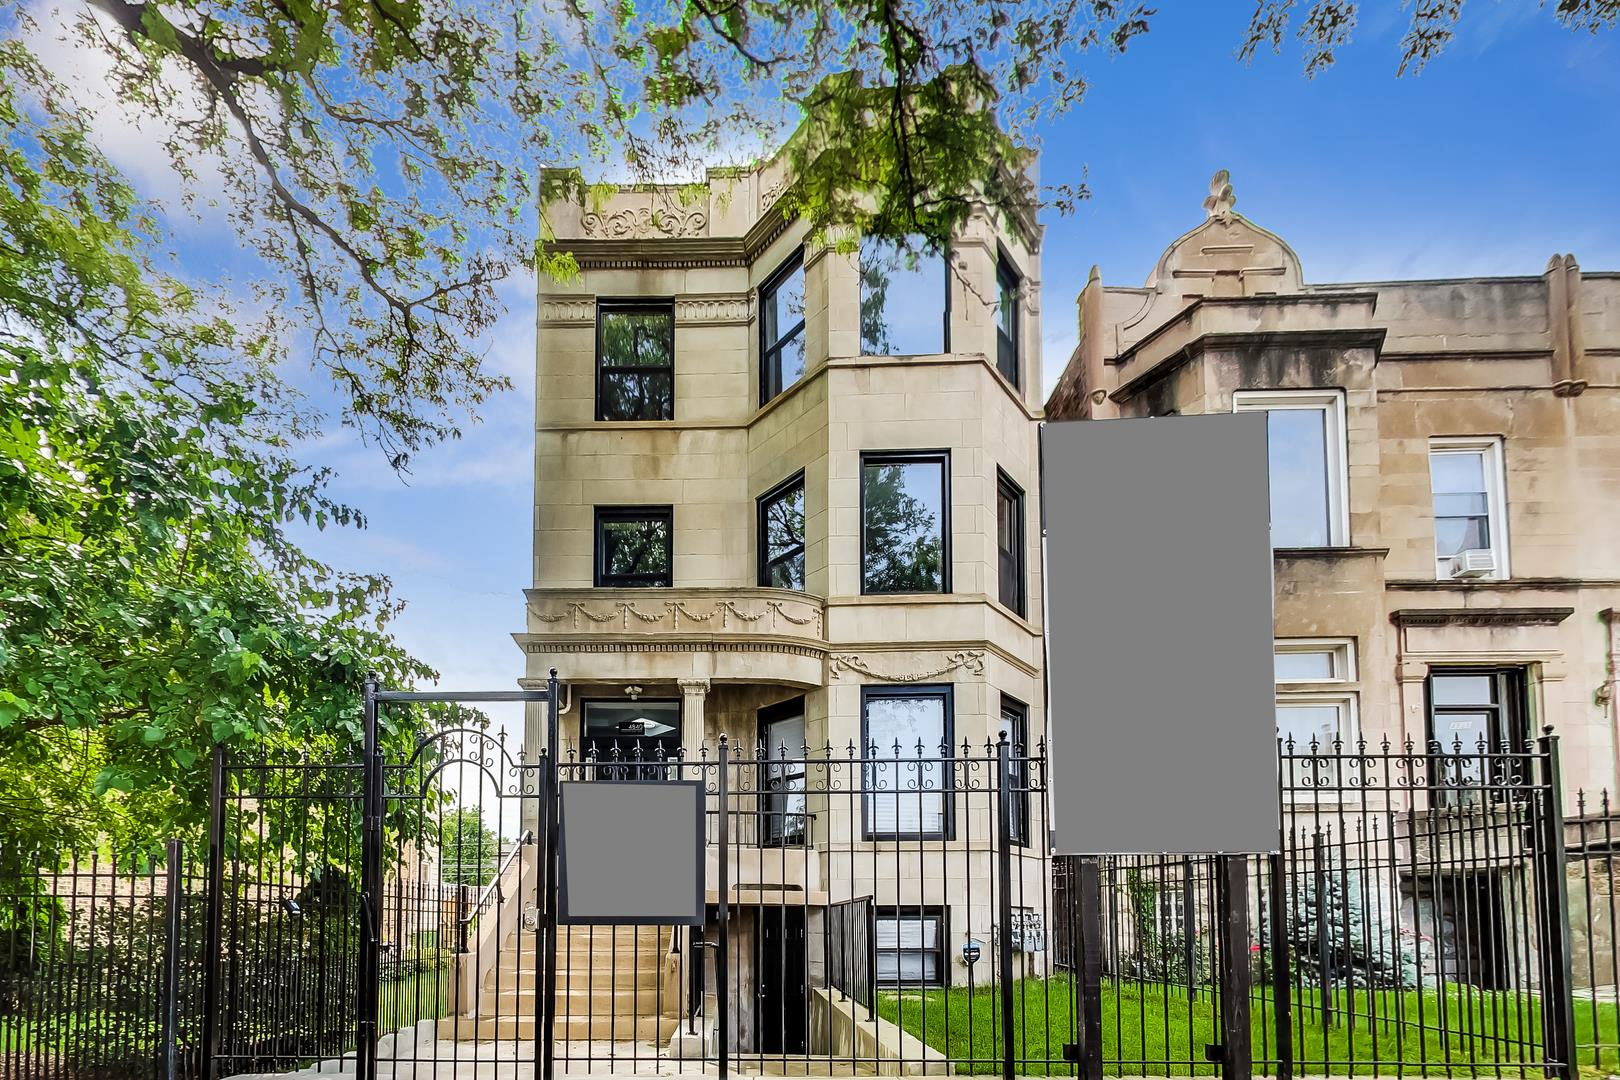 4840 S Champlain Avenue #3, Chicago, IL 60615 - #: 10932722